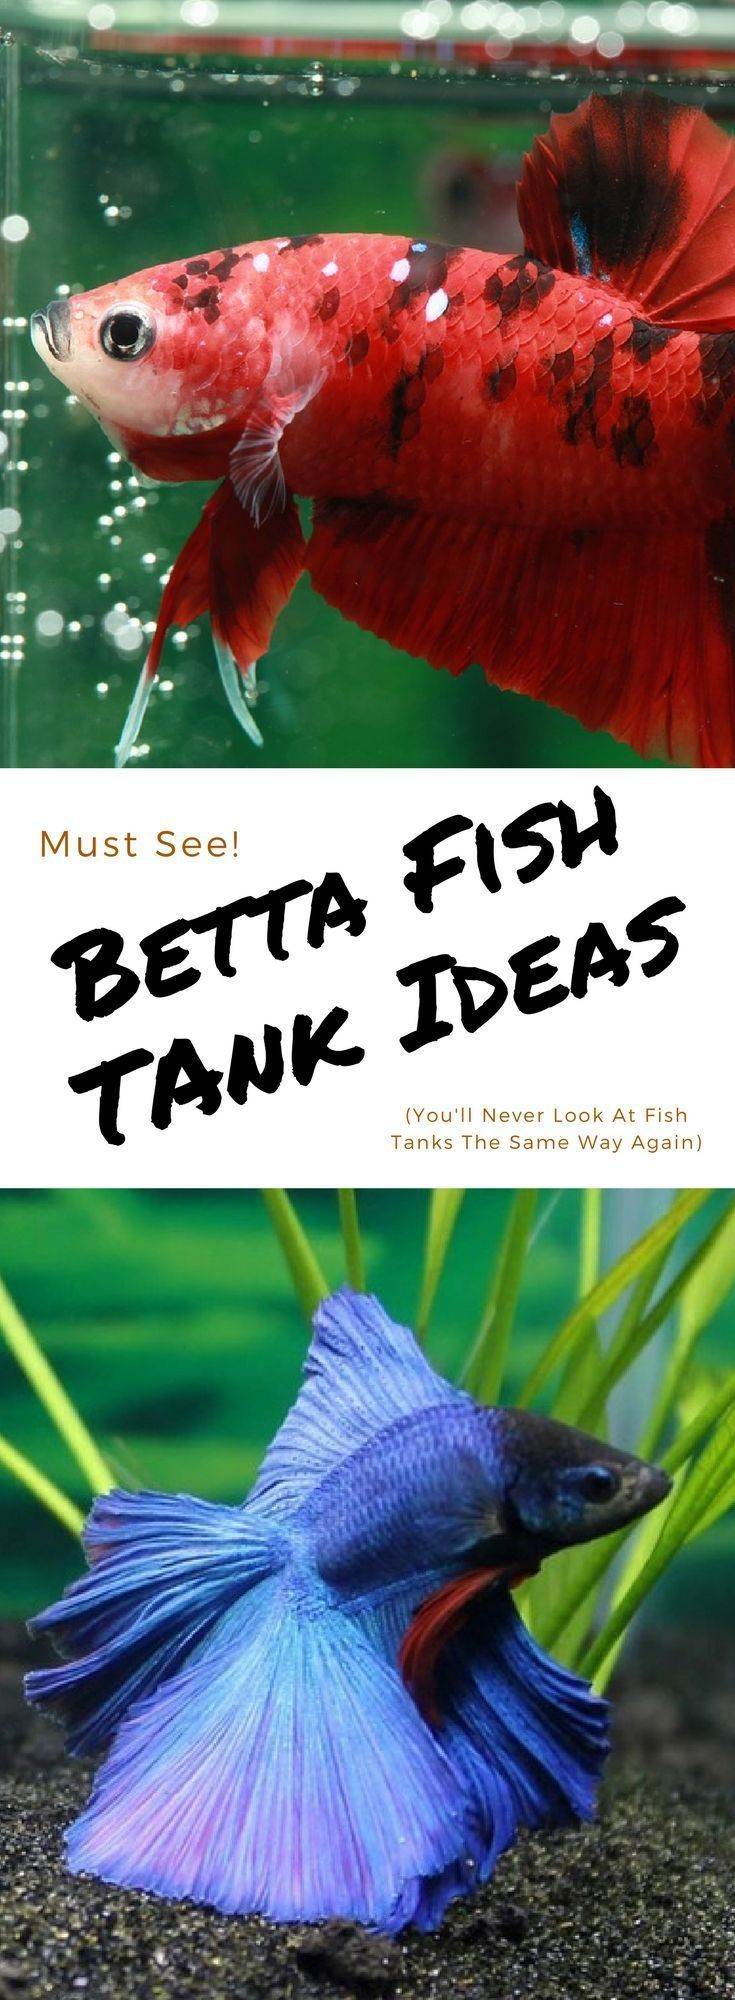 1157 best Pet Fish Stuff ✿ images on Pinterest | Fish aquariums ...